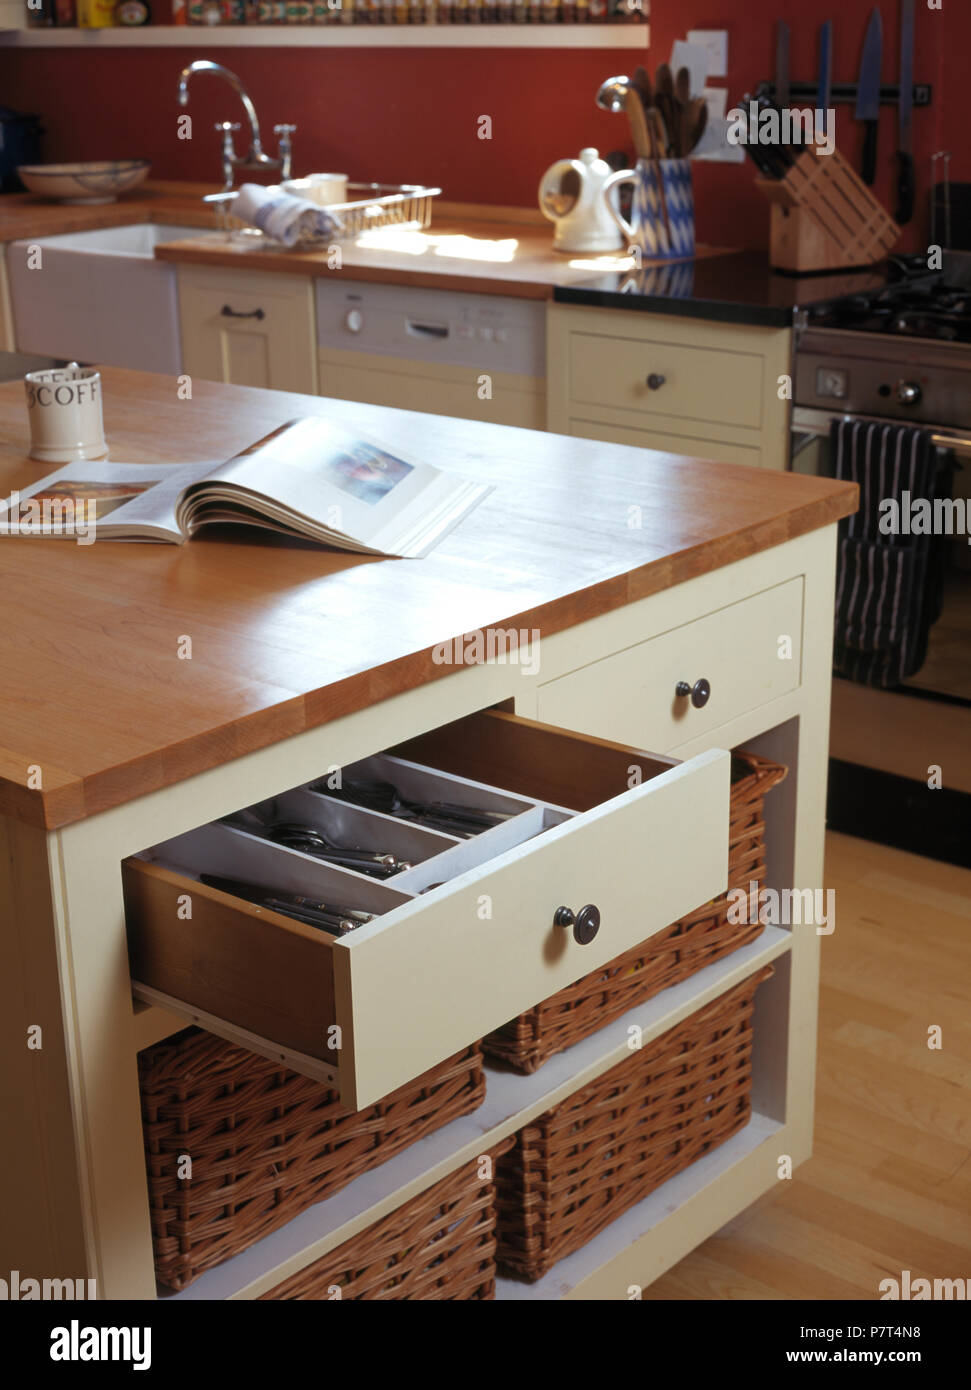 Open Drawer Above Storage Baskets On Shelves In Island